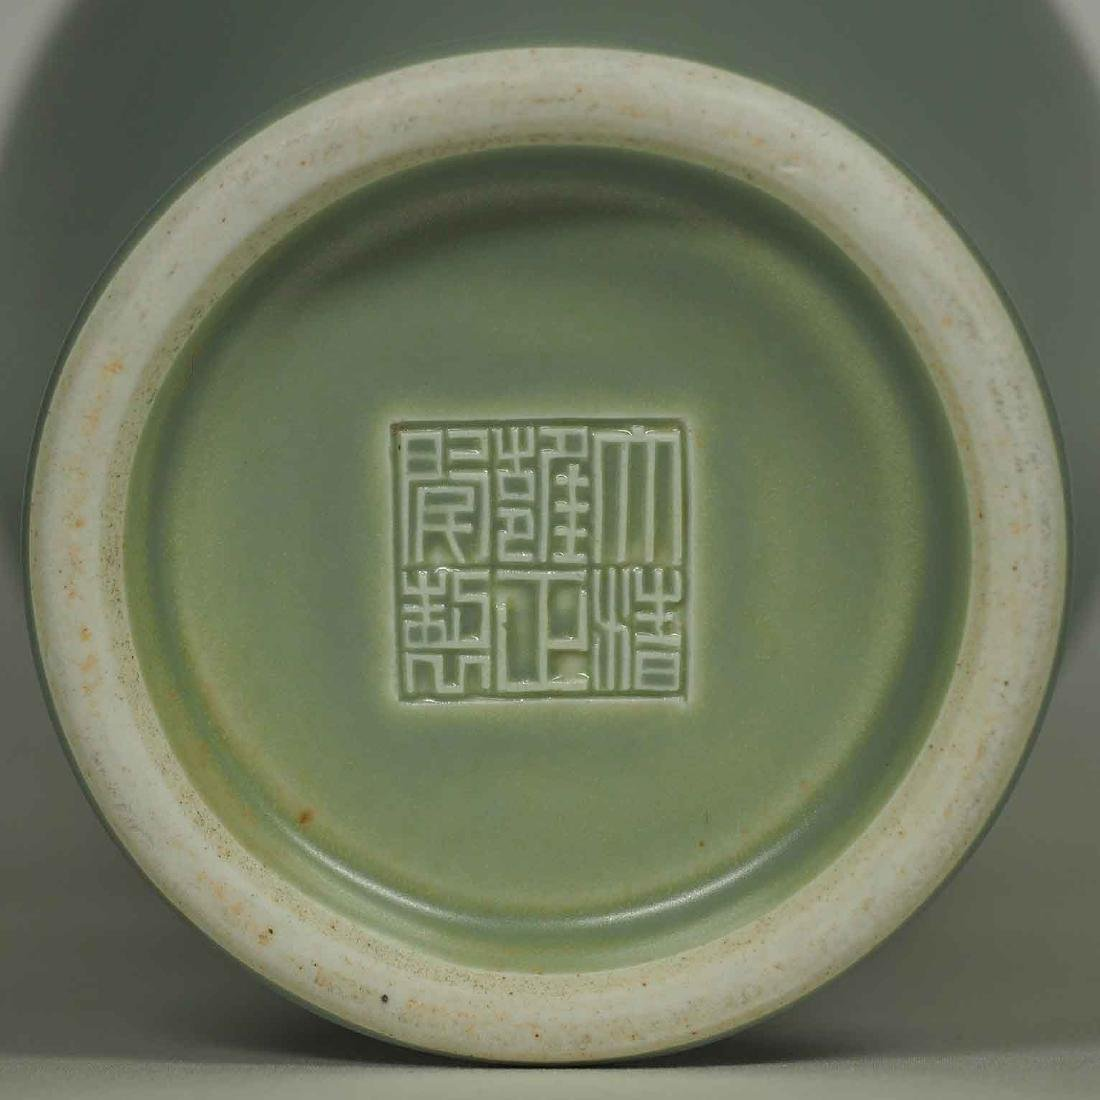 Wintergreen Vase, Qianlong Mark, late Qing Dynasty - 5